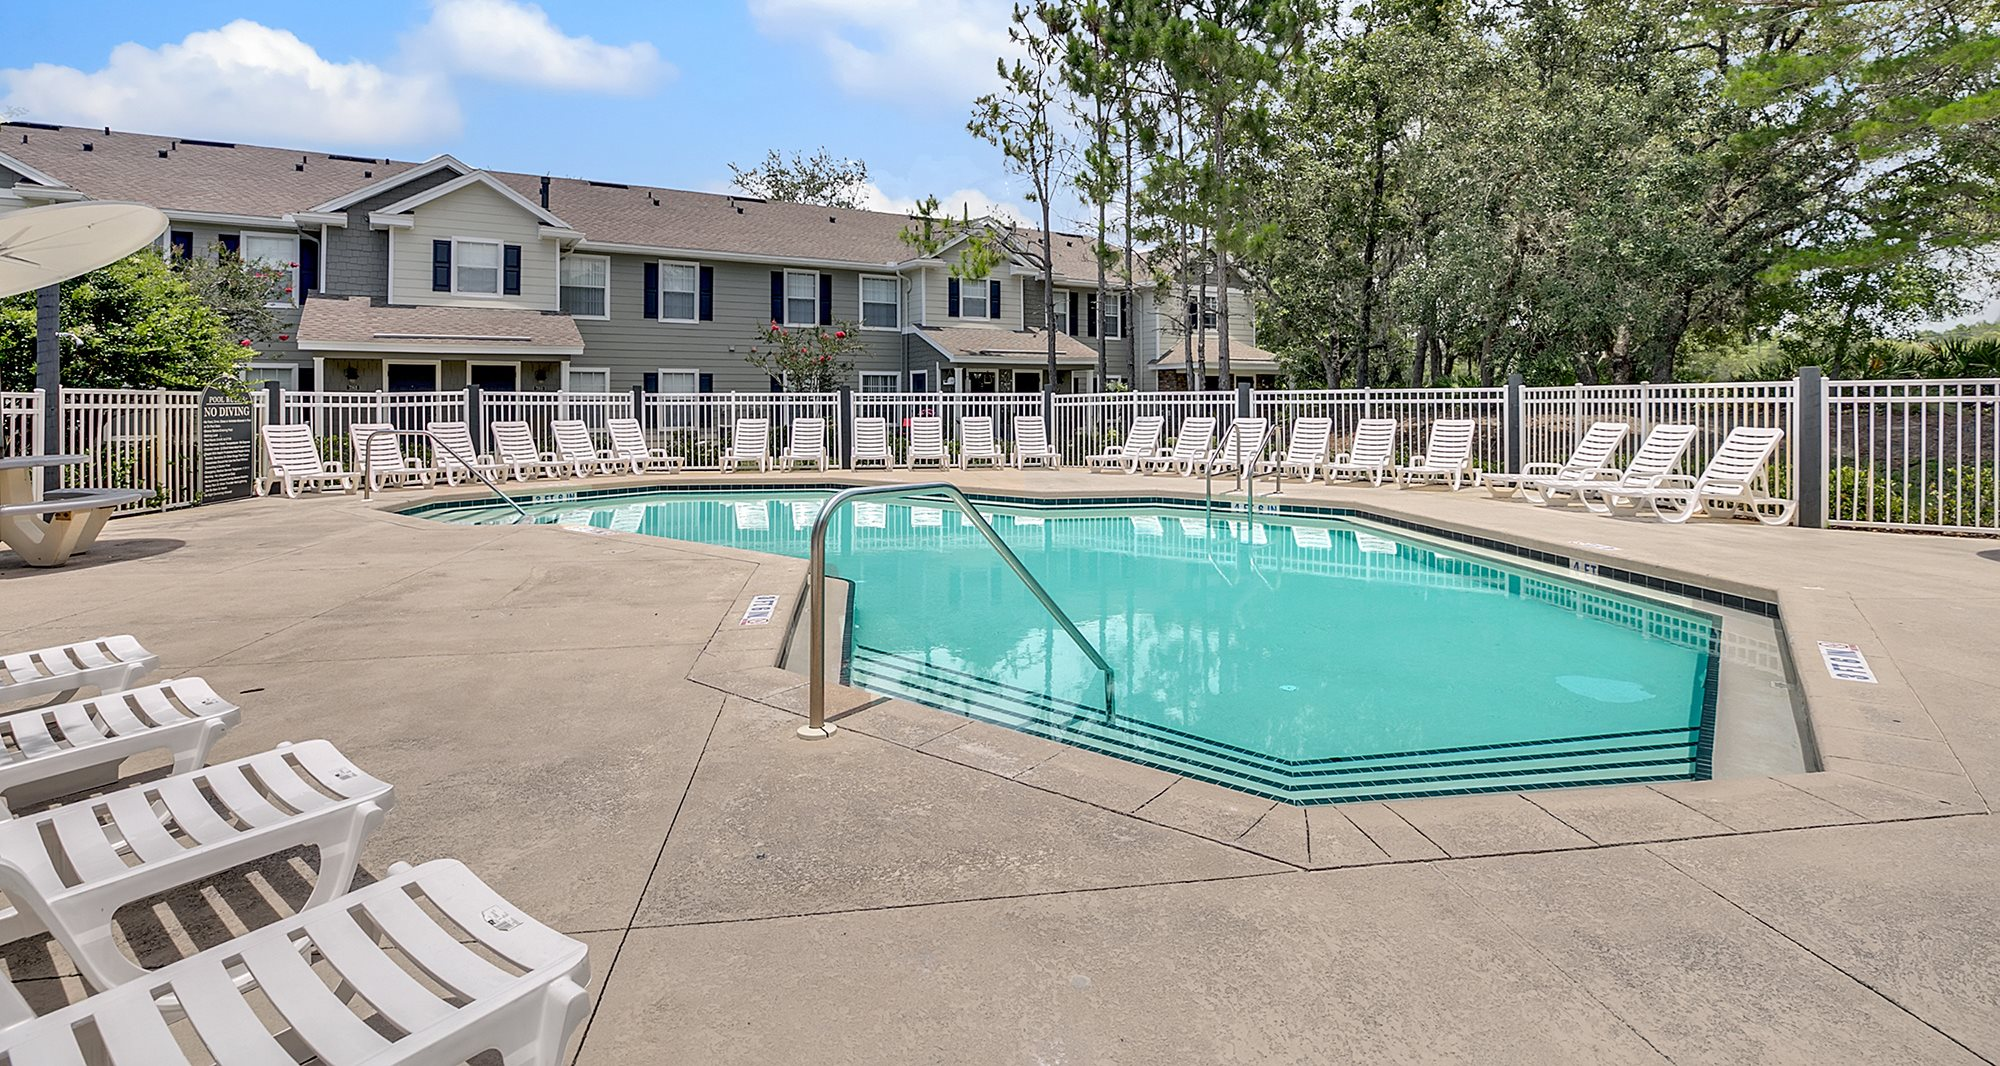 Nantucket Cove Apartments for rent in Spring Hill, FL. Make this community your new home or visit other Concord Rents communities at ConcordRents.com. Pool